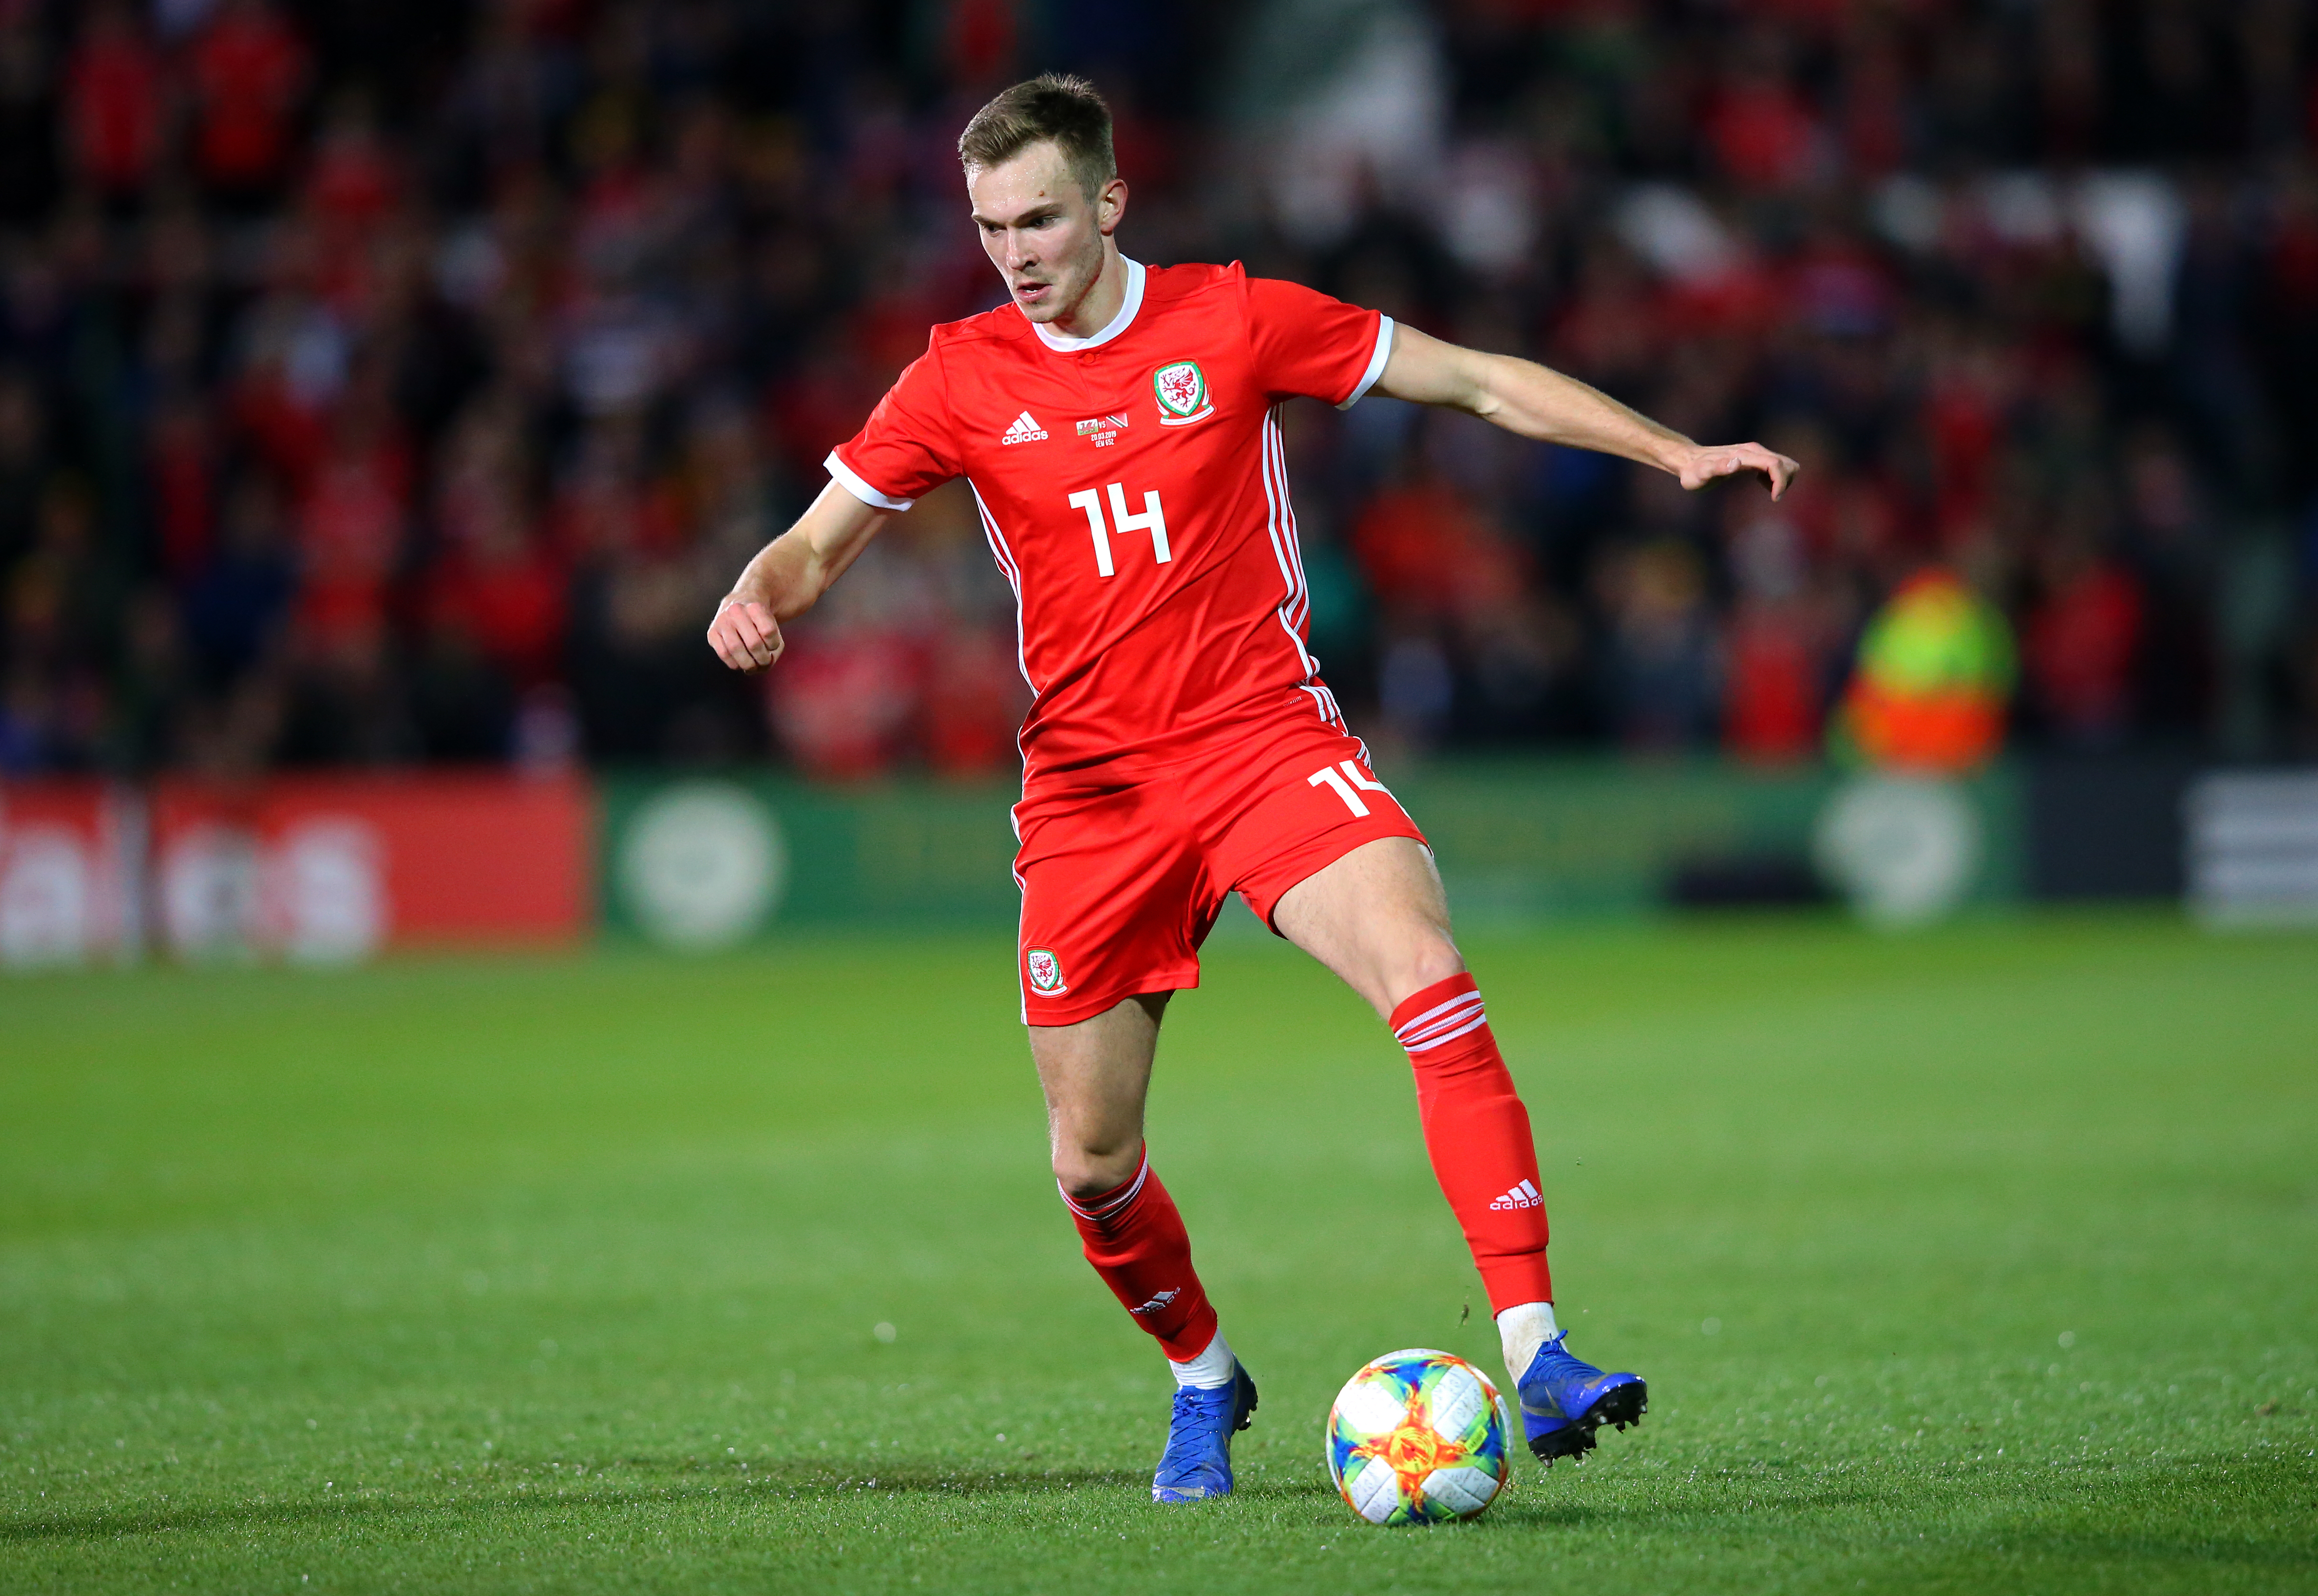 Ryan Hedges in action for Wales.